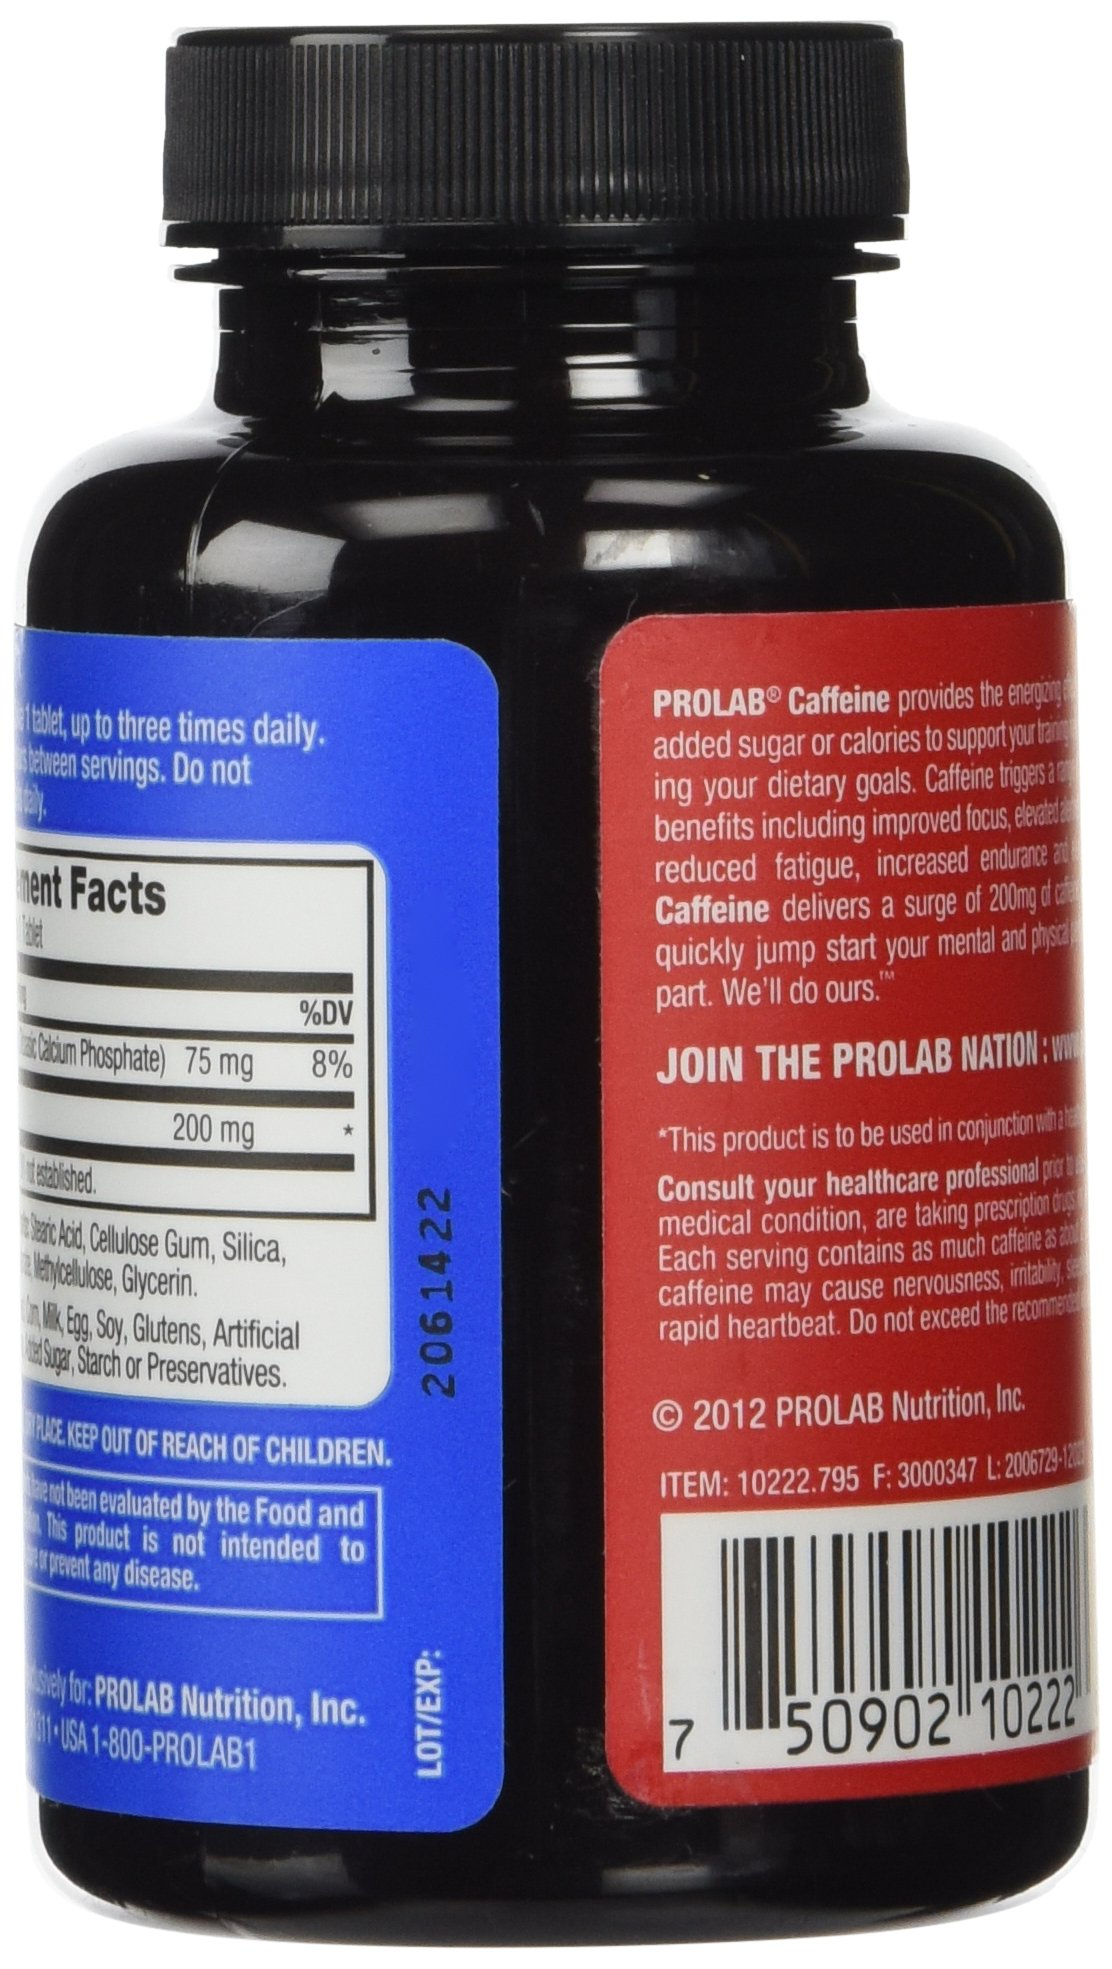 ProLab Caffeine Pills Energy and Focus: (3) 100-Count Bottles (200 mg) by ProLab (Image #5)